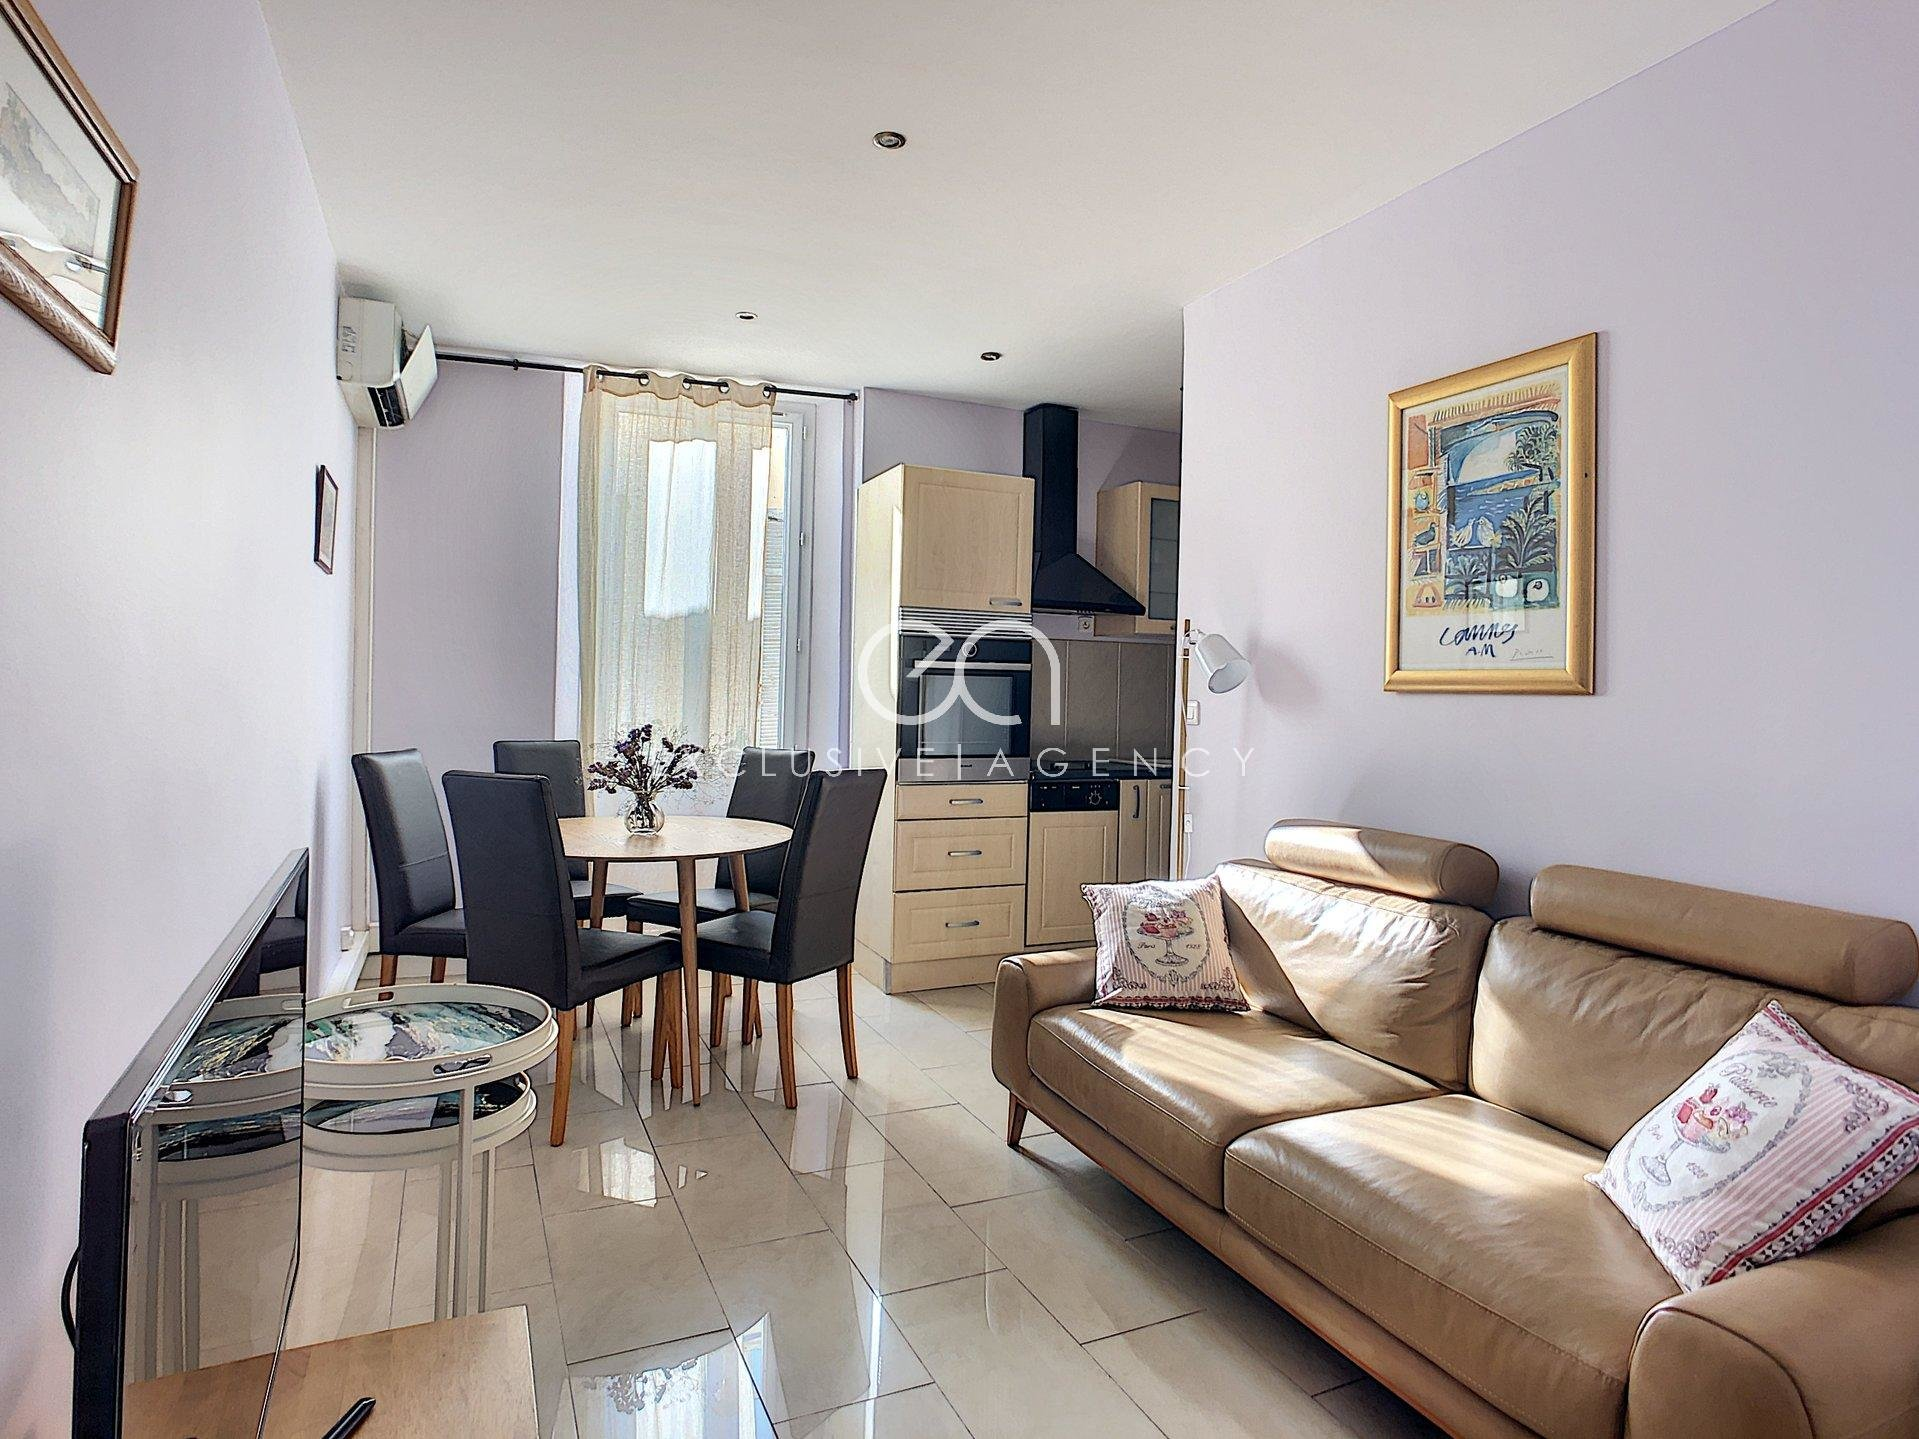 For sale - Cannes Center 2 bedroom apartment of 50sqm